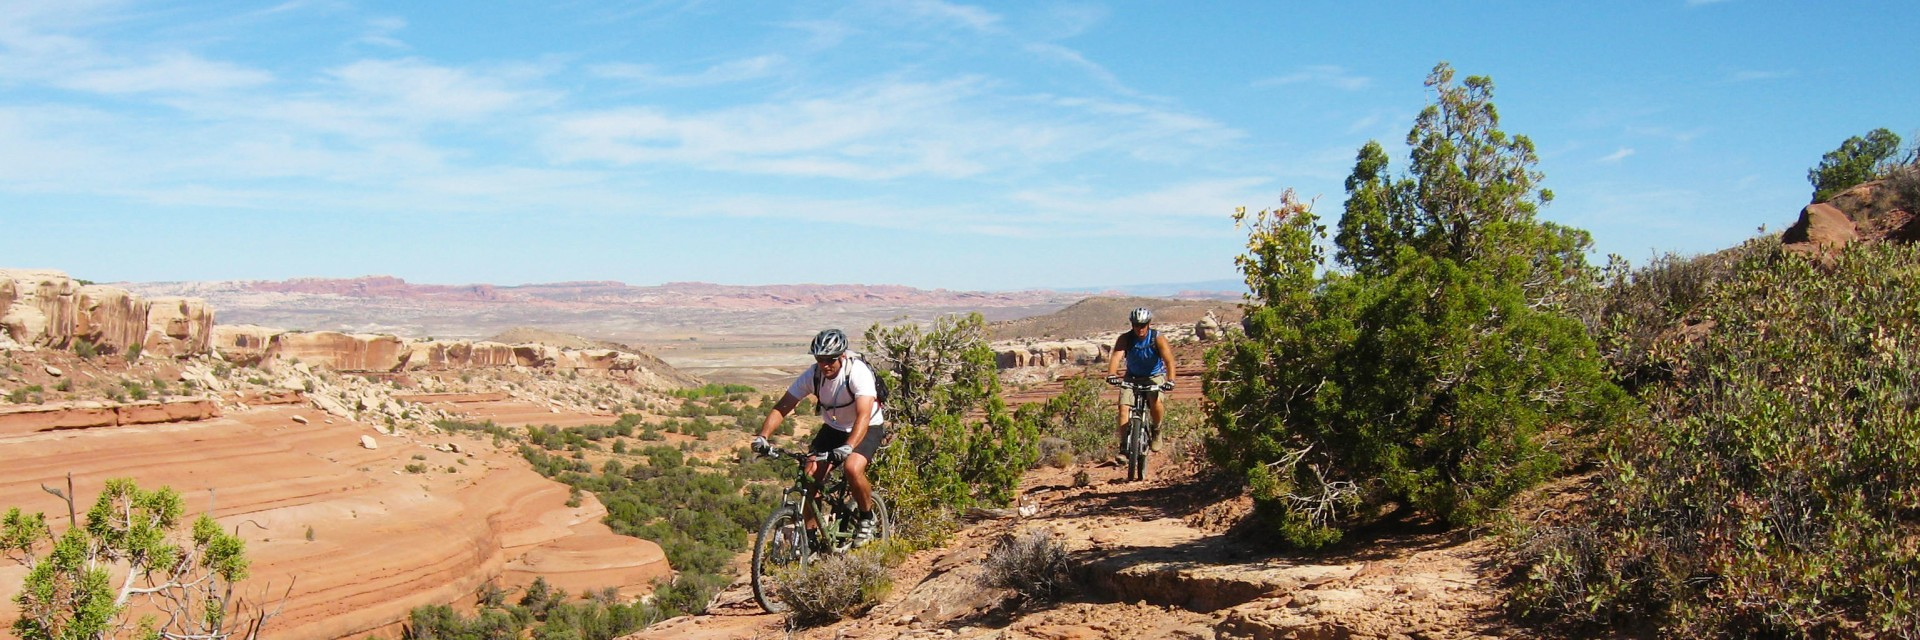 Heading around another box canyon along the rim is all part of the Kokopelli Trail 5-day guided mountain bike tour